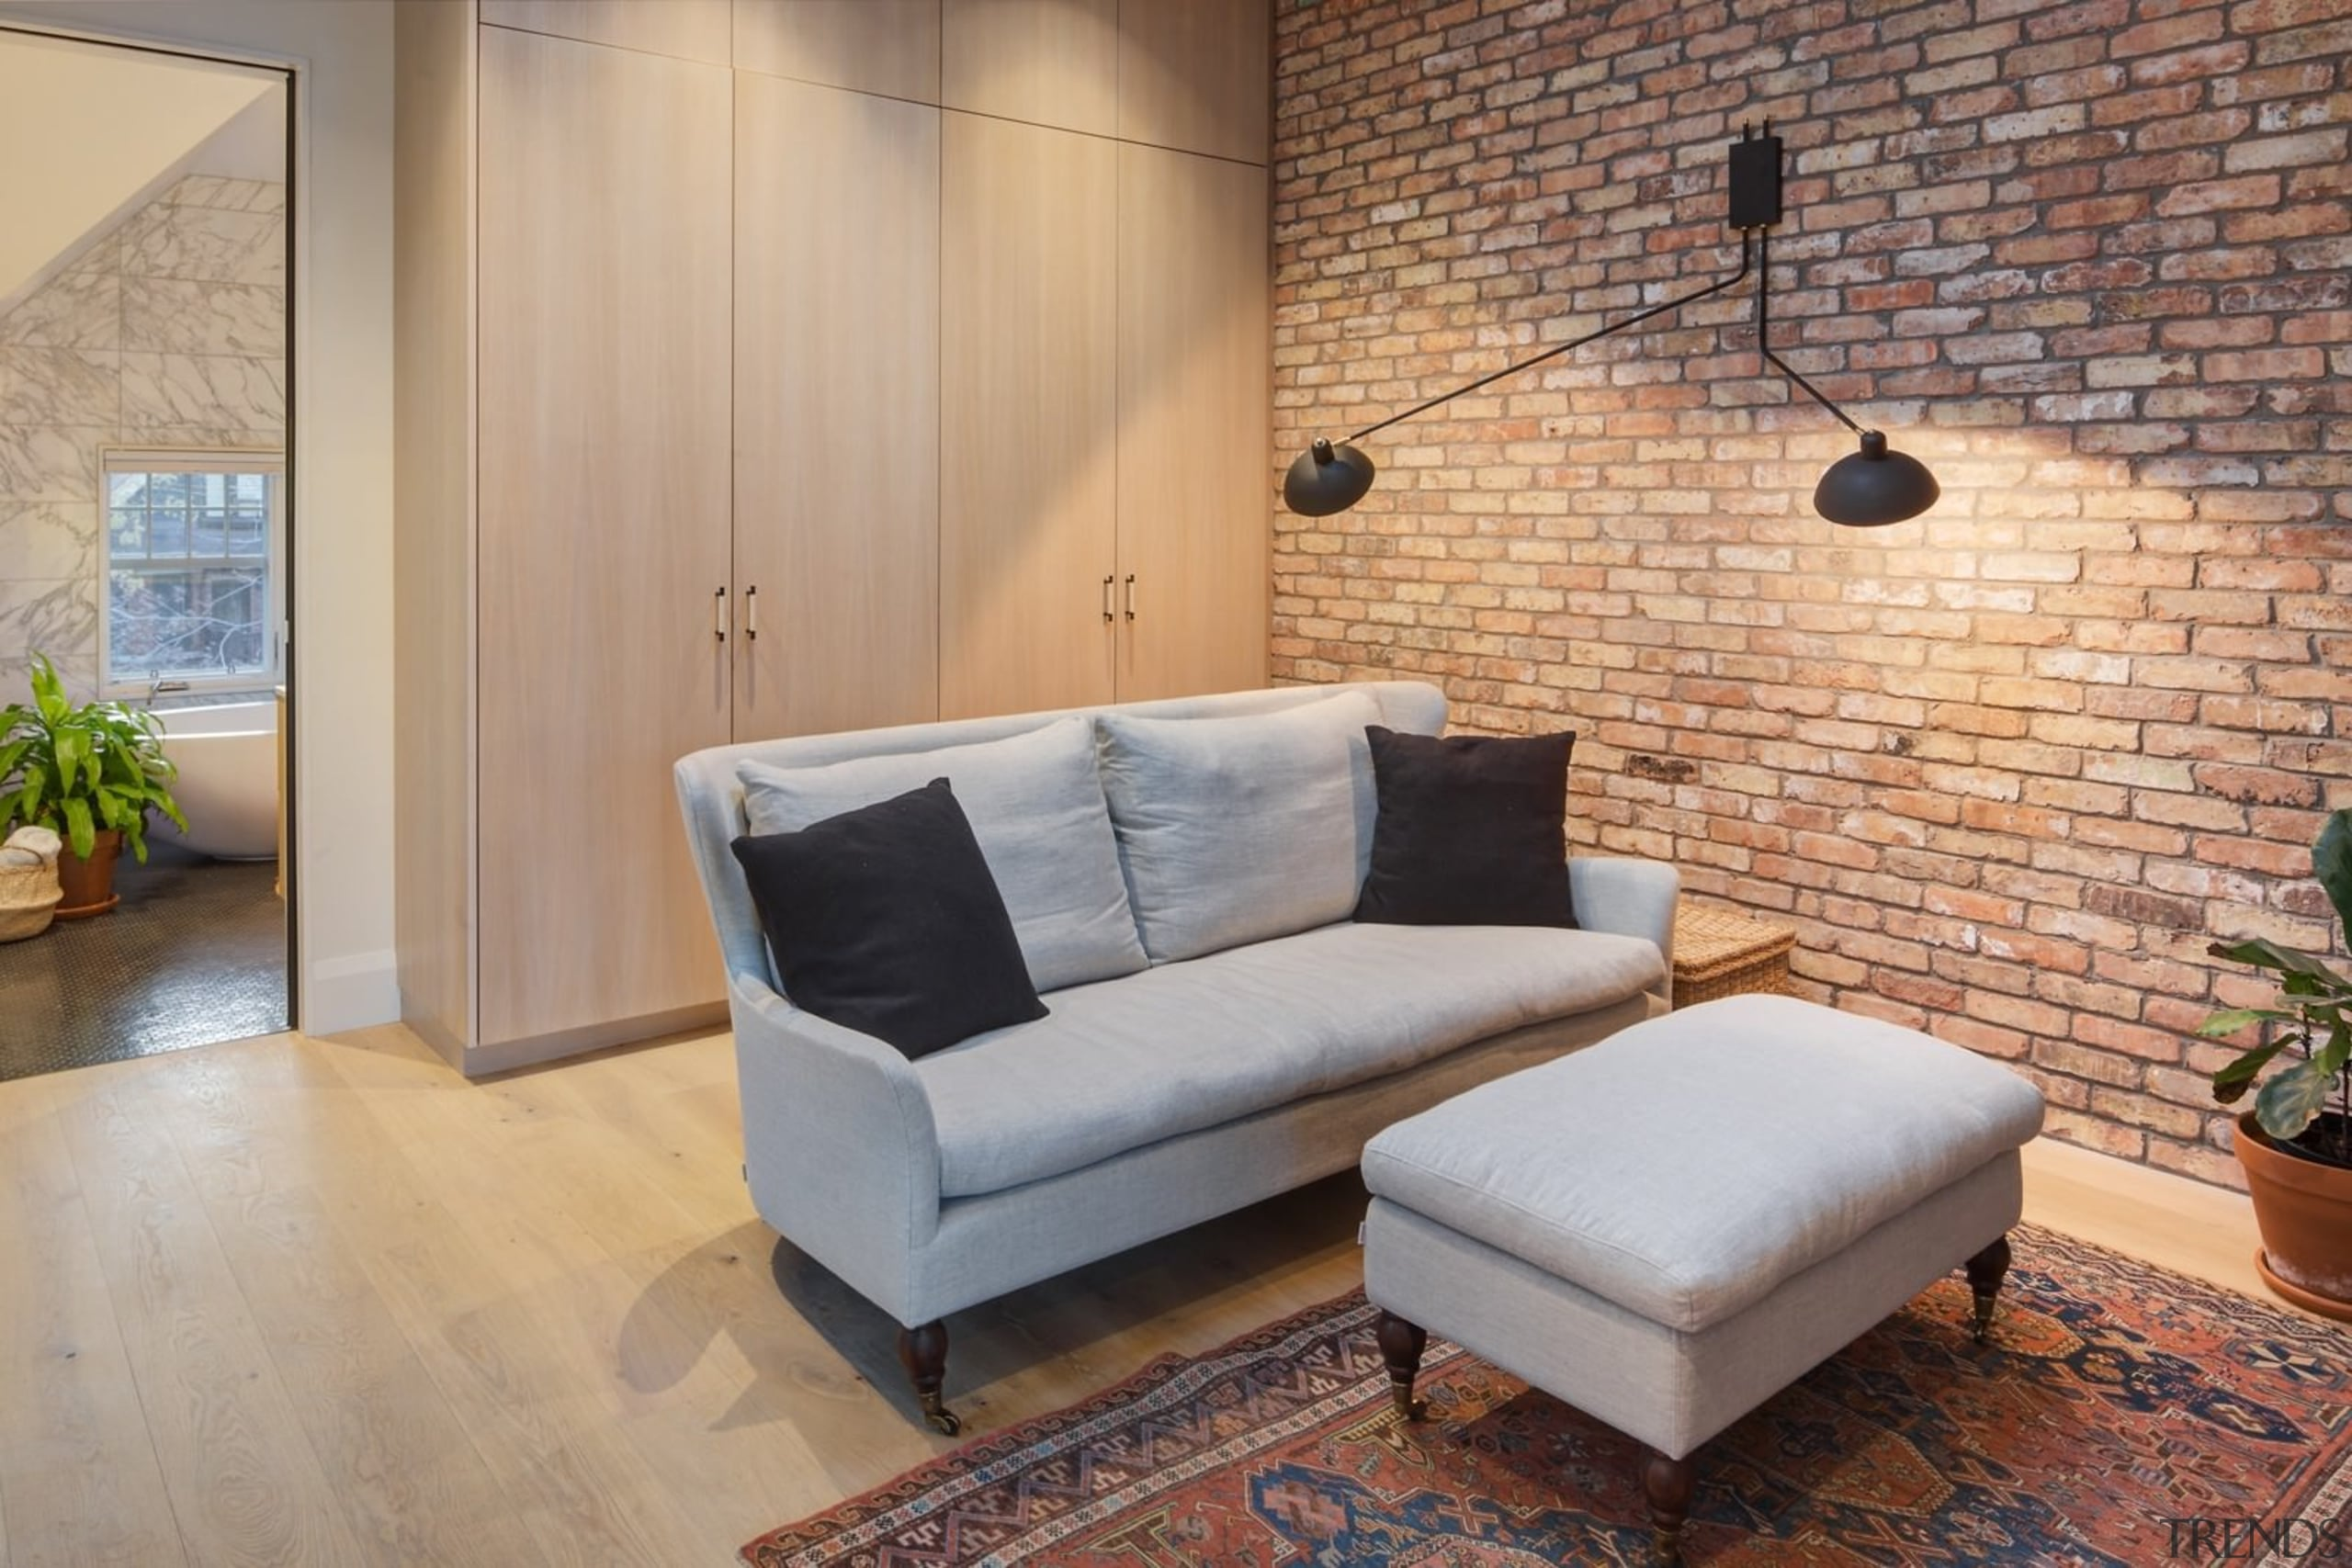 Another view of the brick feature wall and ceiling, couch, floor, flooring, furniture, hardwood, home, interior design, living room, loft, property, real estate, room, wall, wood, wood flooring, gray, orange